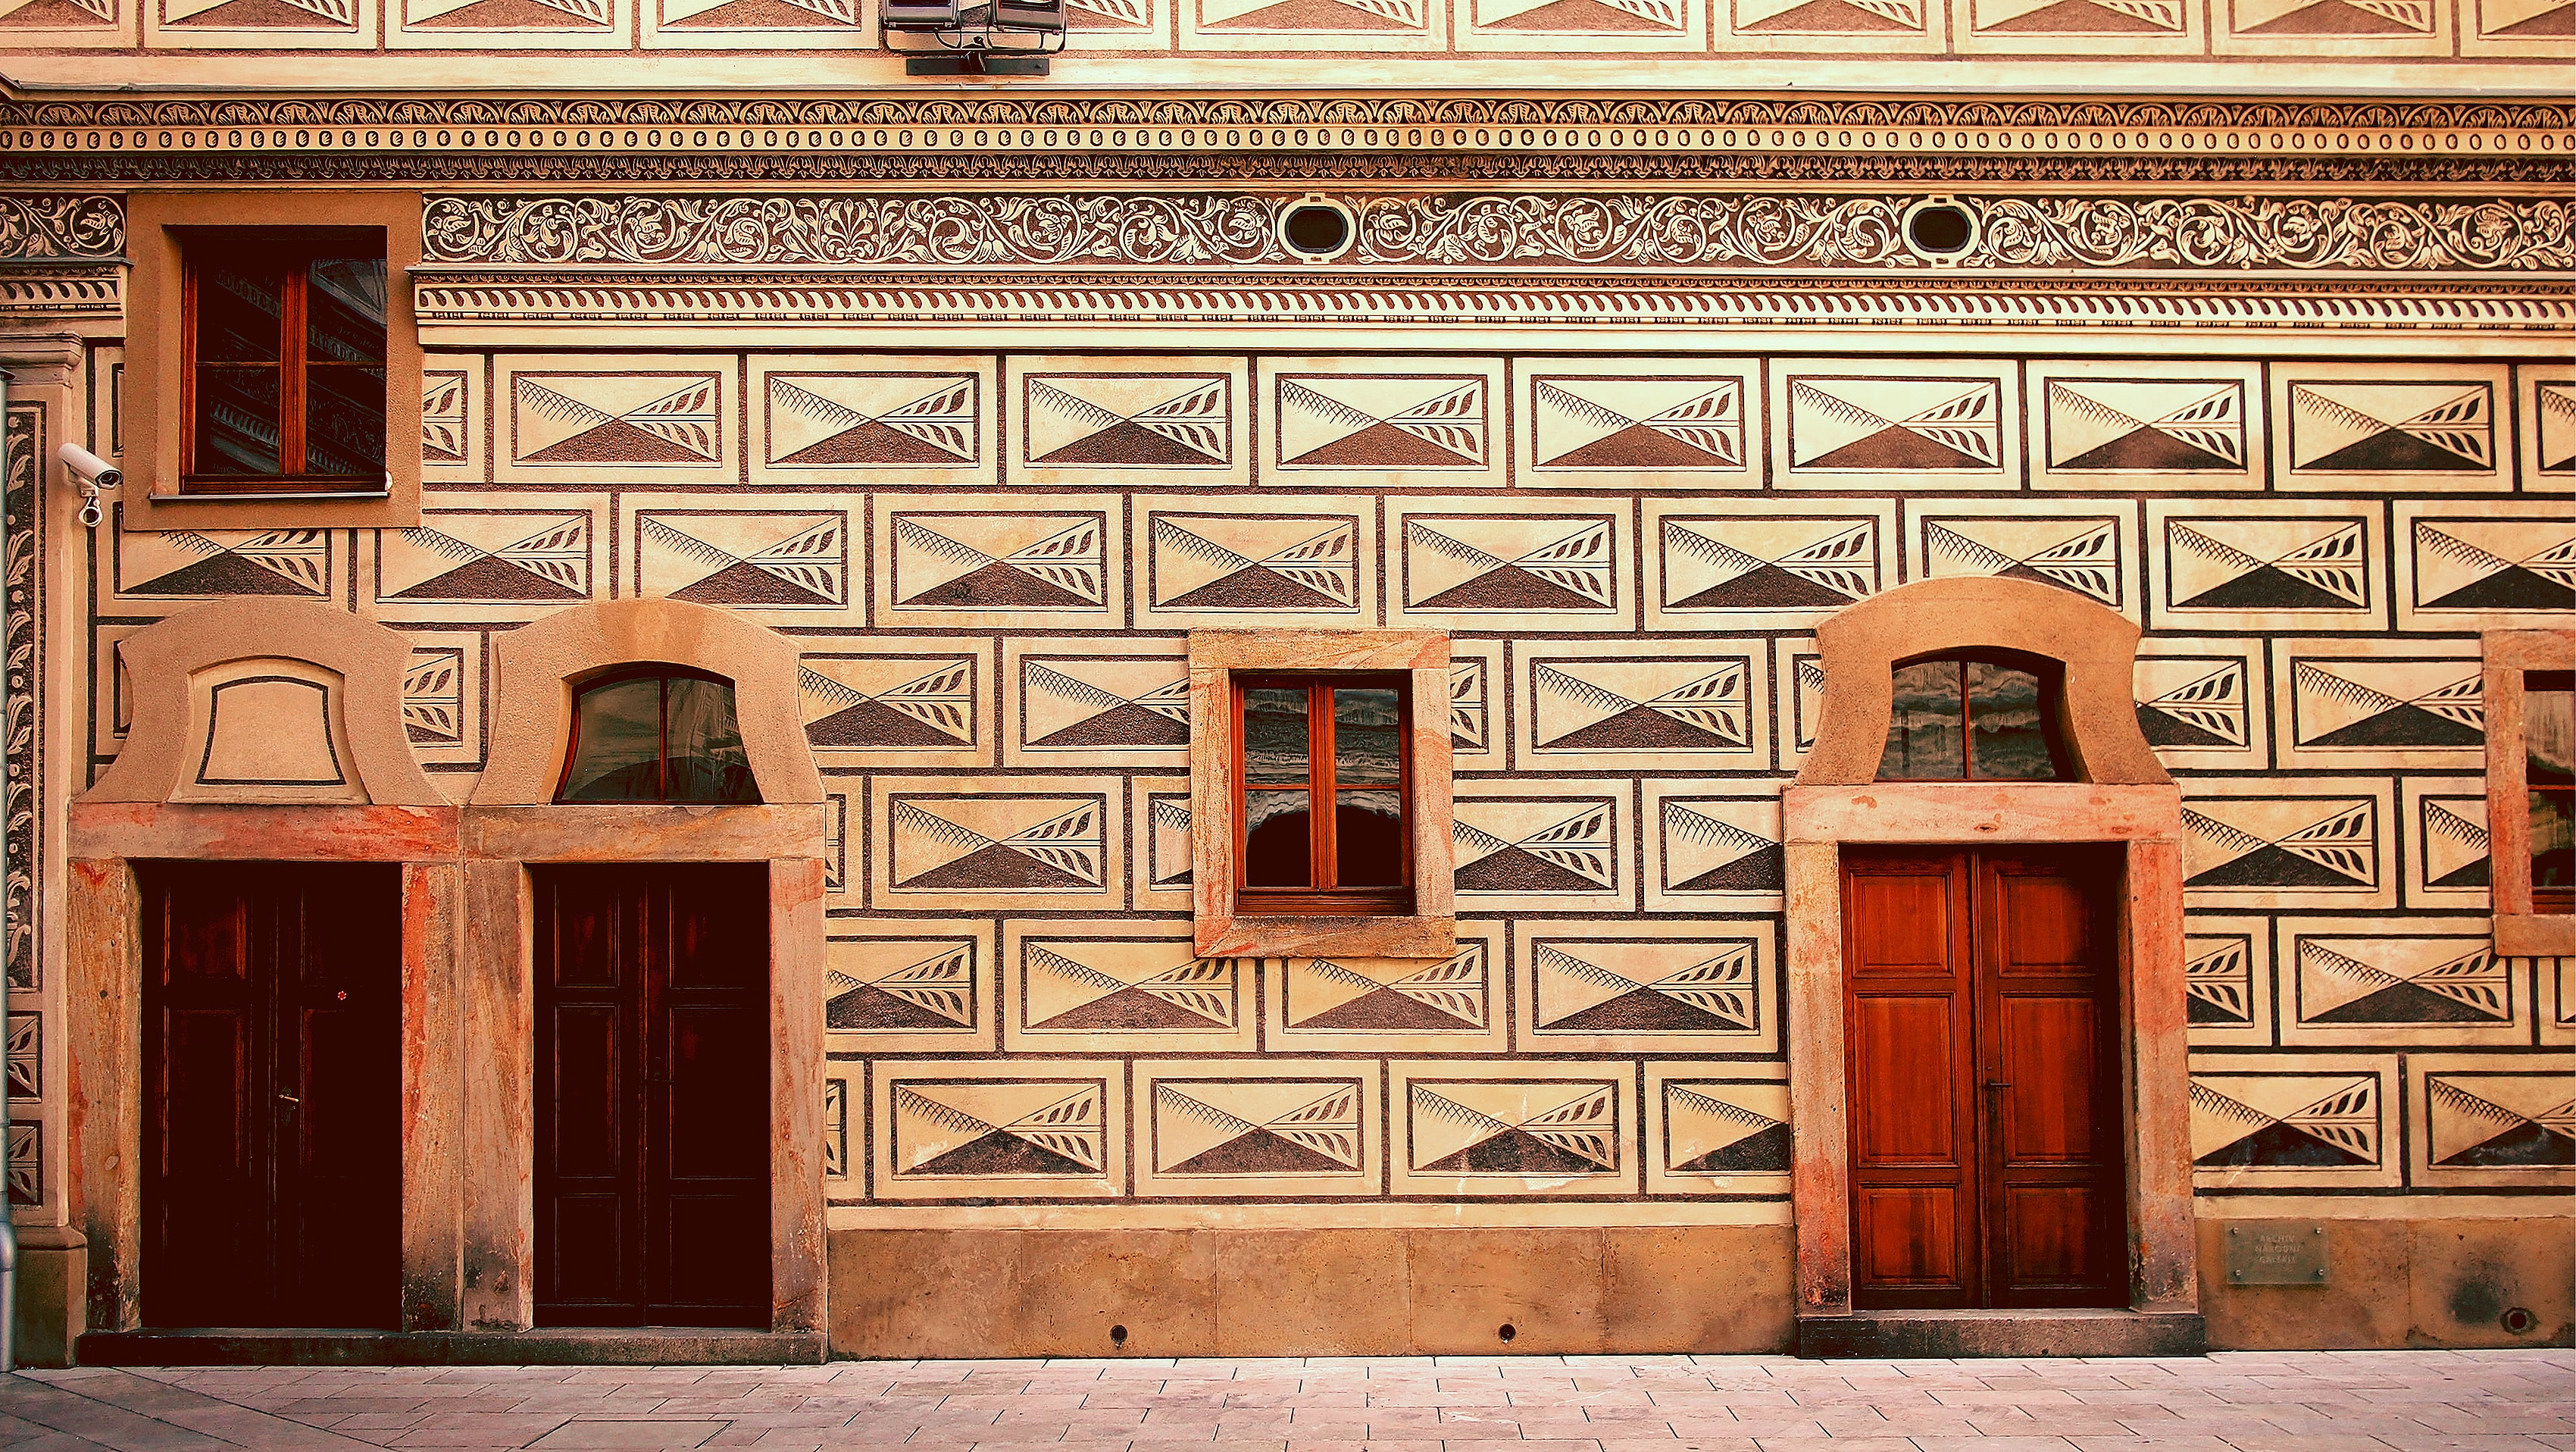 A building in Prague with intricate cultural and geometrical designs.